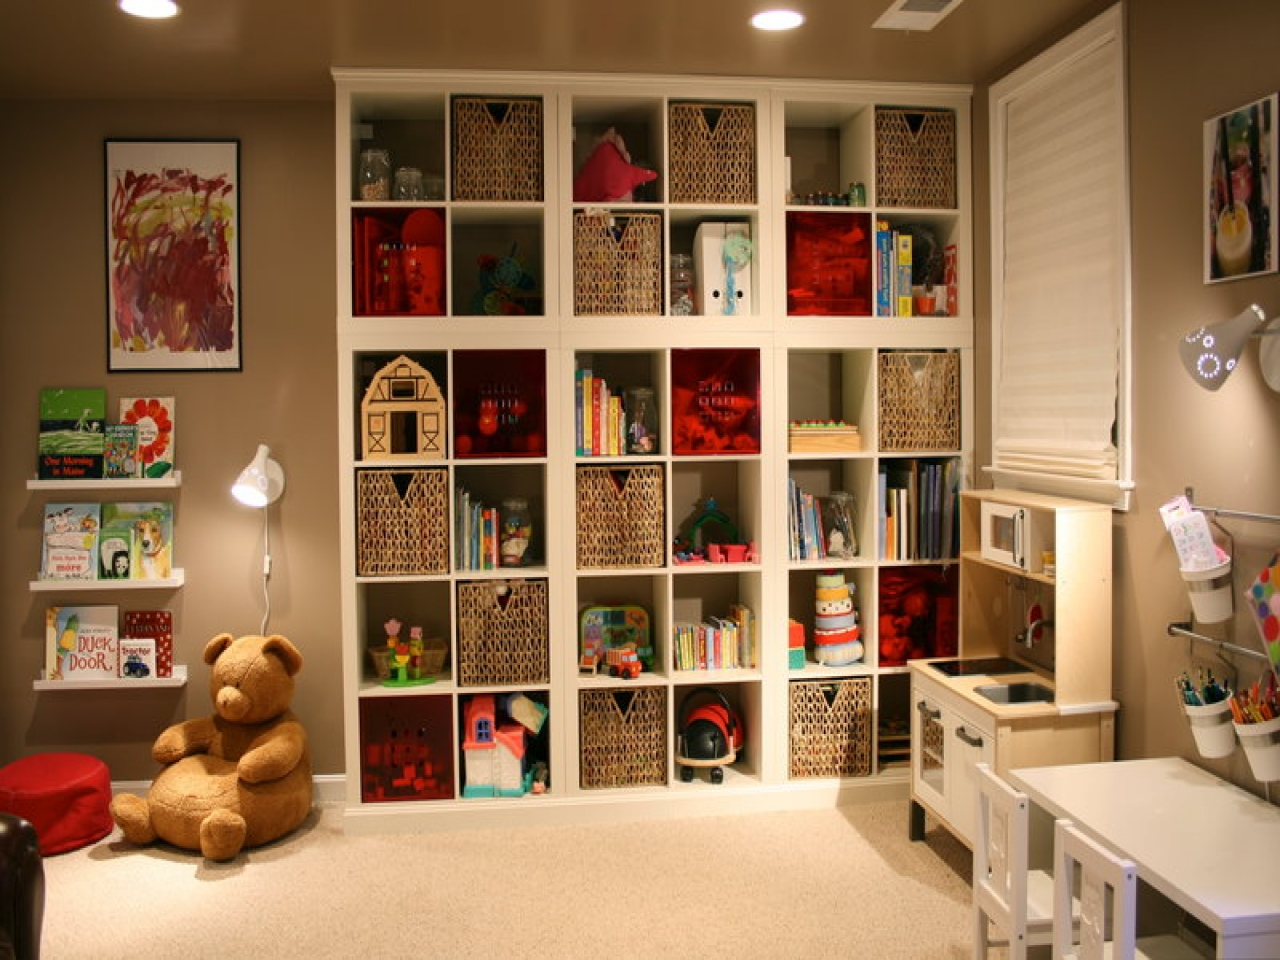 playroom-organization-ikea-expedit-ikea-shelves-playroom-f0f8a270ba784fc0